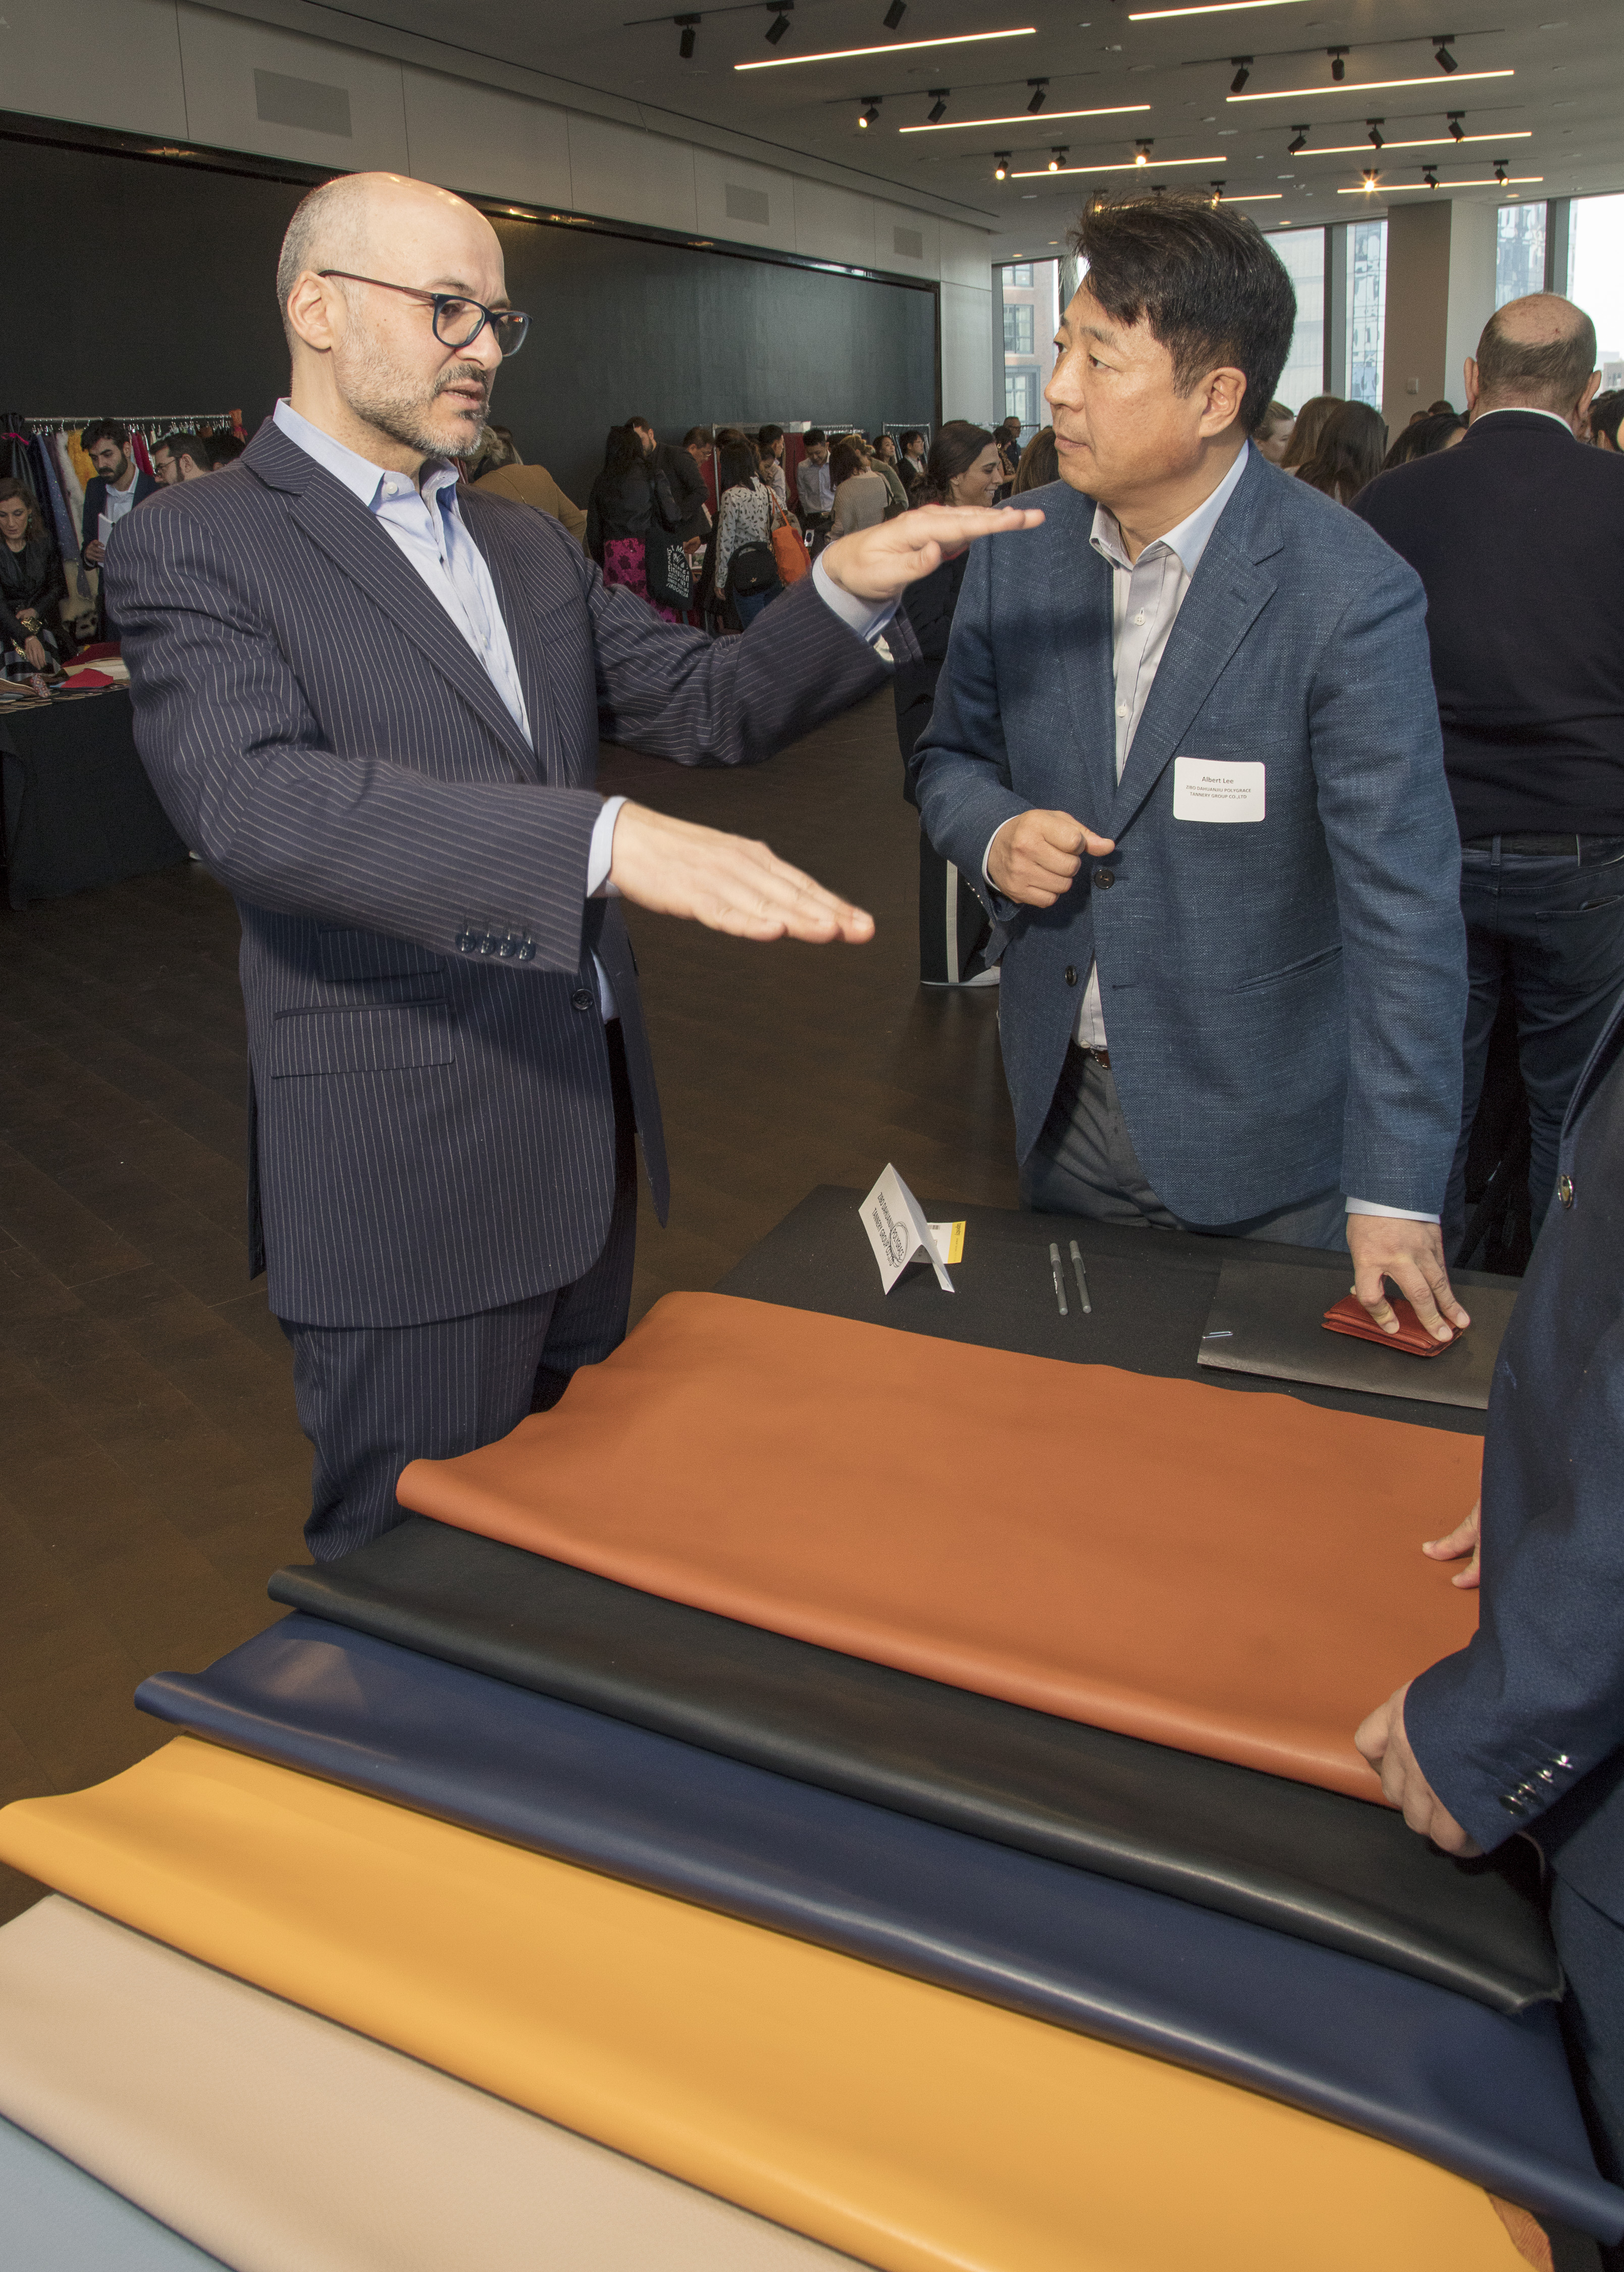 Tapestry ceo Victor Luis at one of the vendor tables.